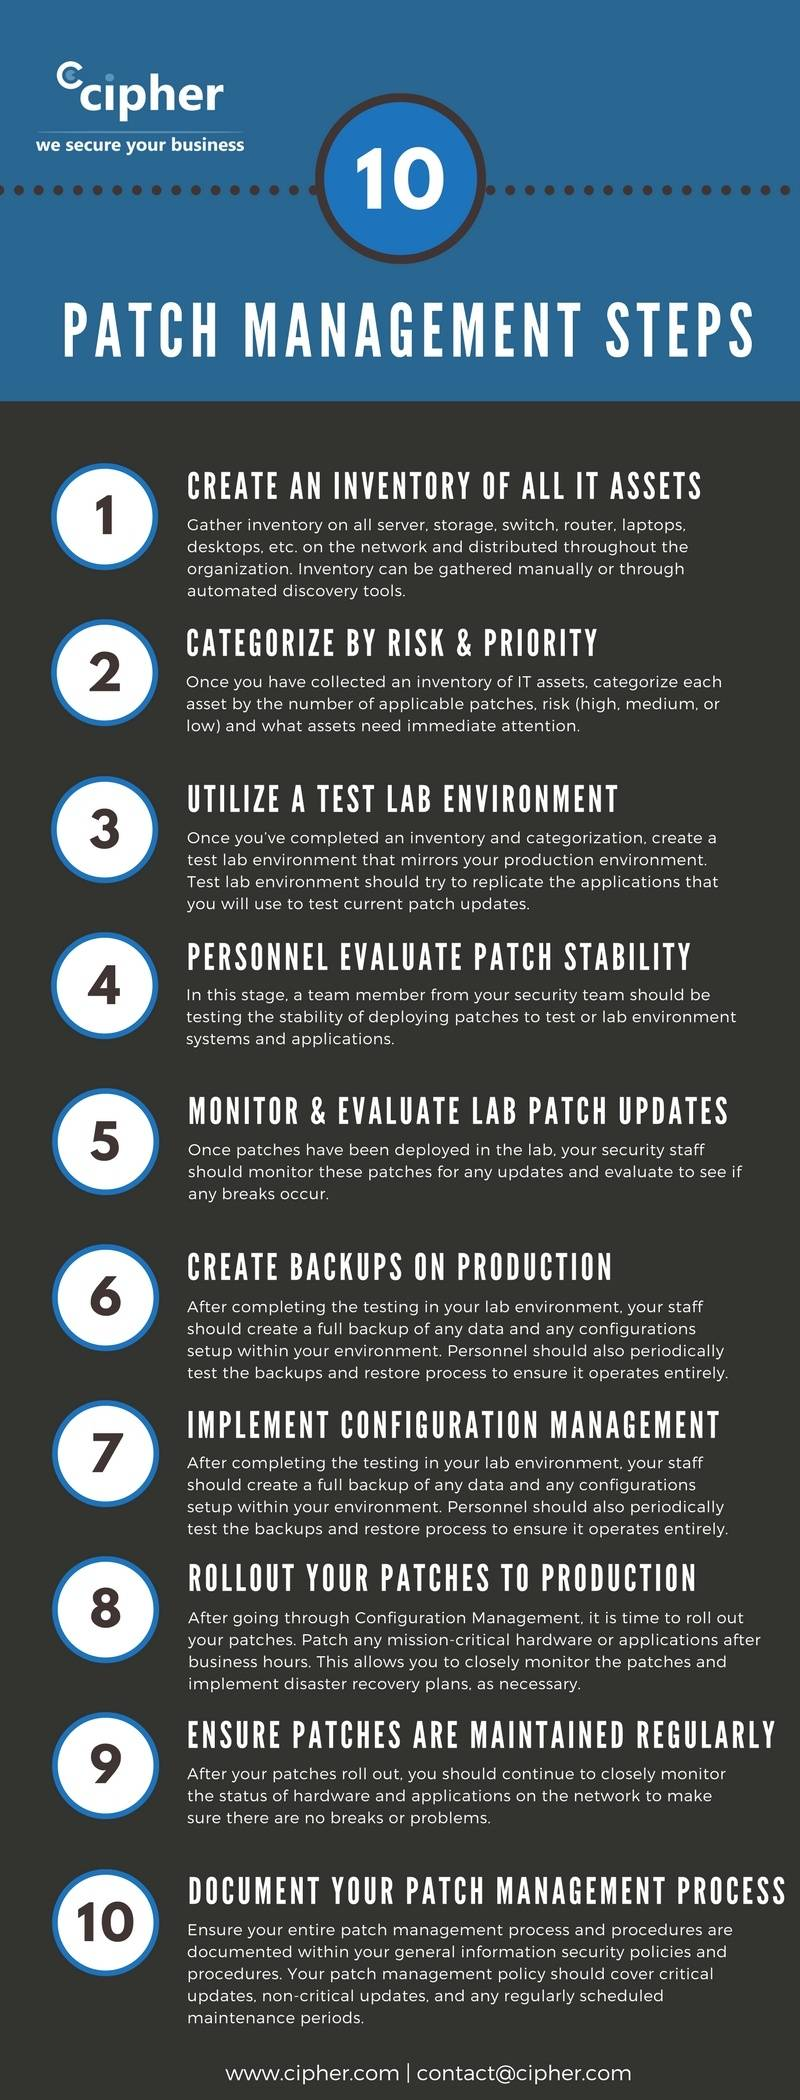 Patch Management Process Template